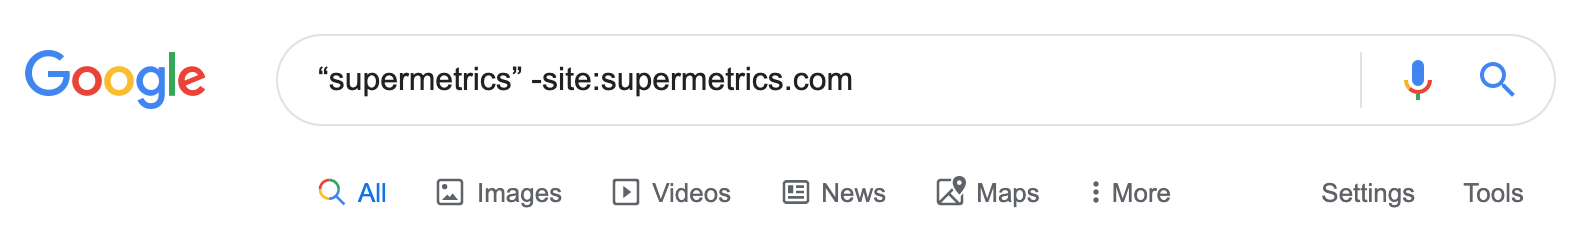 mention tracking for supermetrics using google search